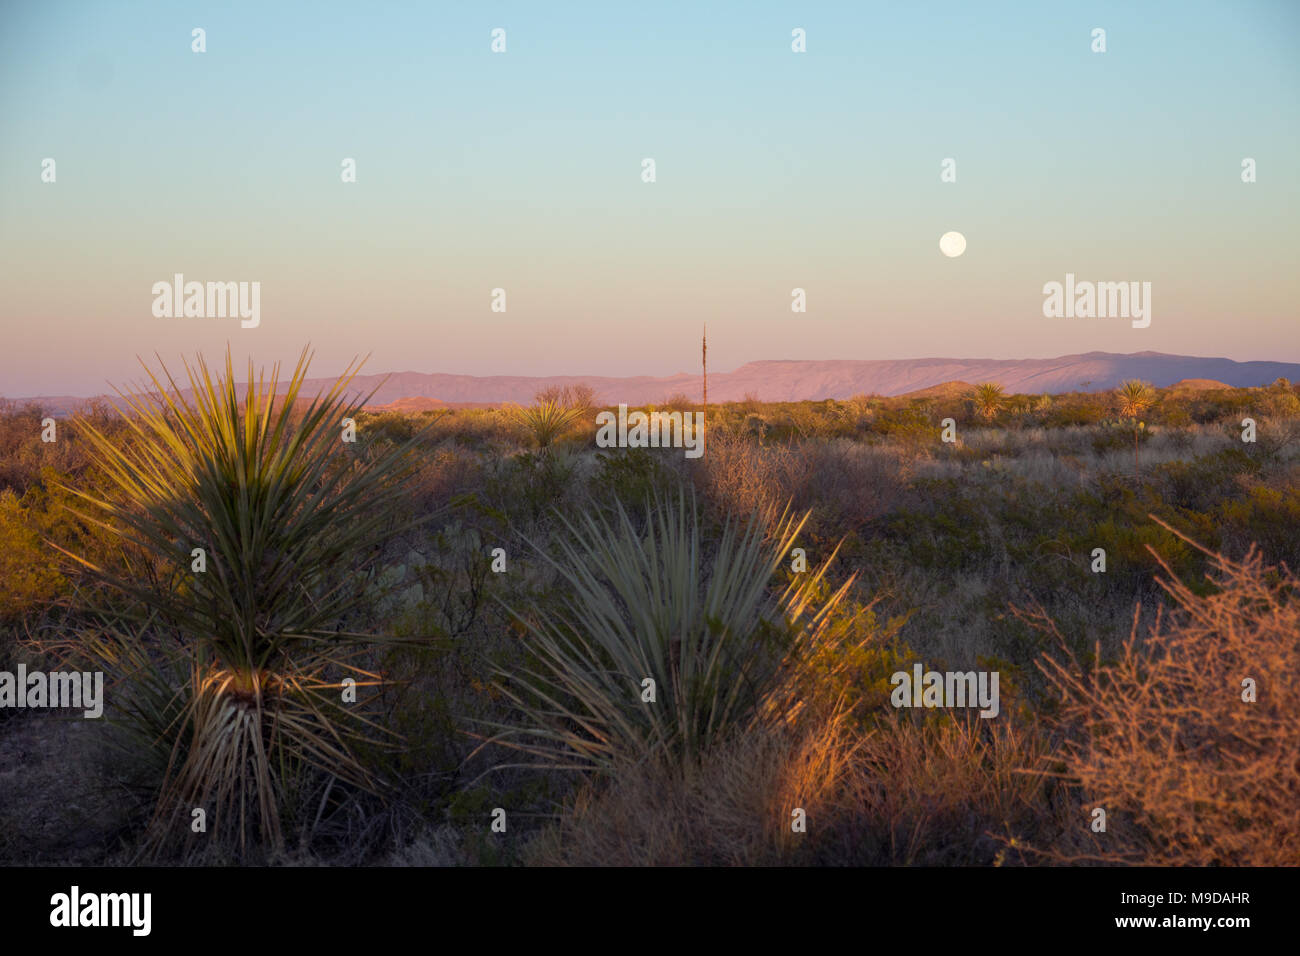 Just before sunset, pink and orange light illuminated hills in the east as a full moon rose above.  Big Bend National Park, TX from the Main Park Road - Stock Image